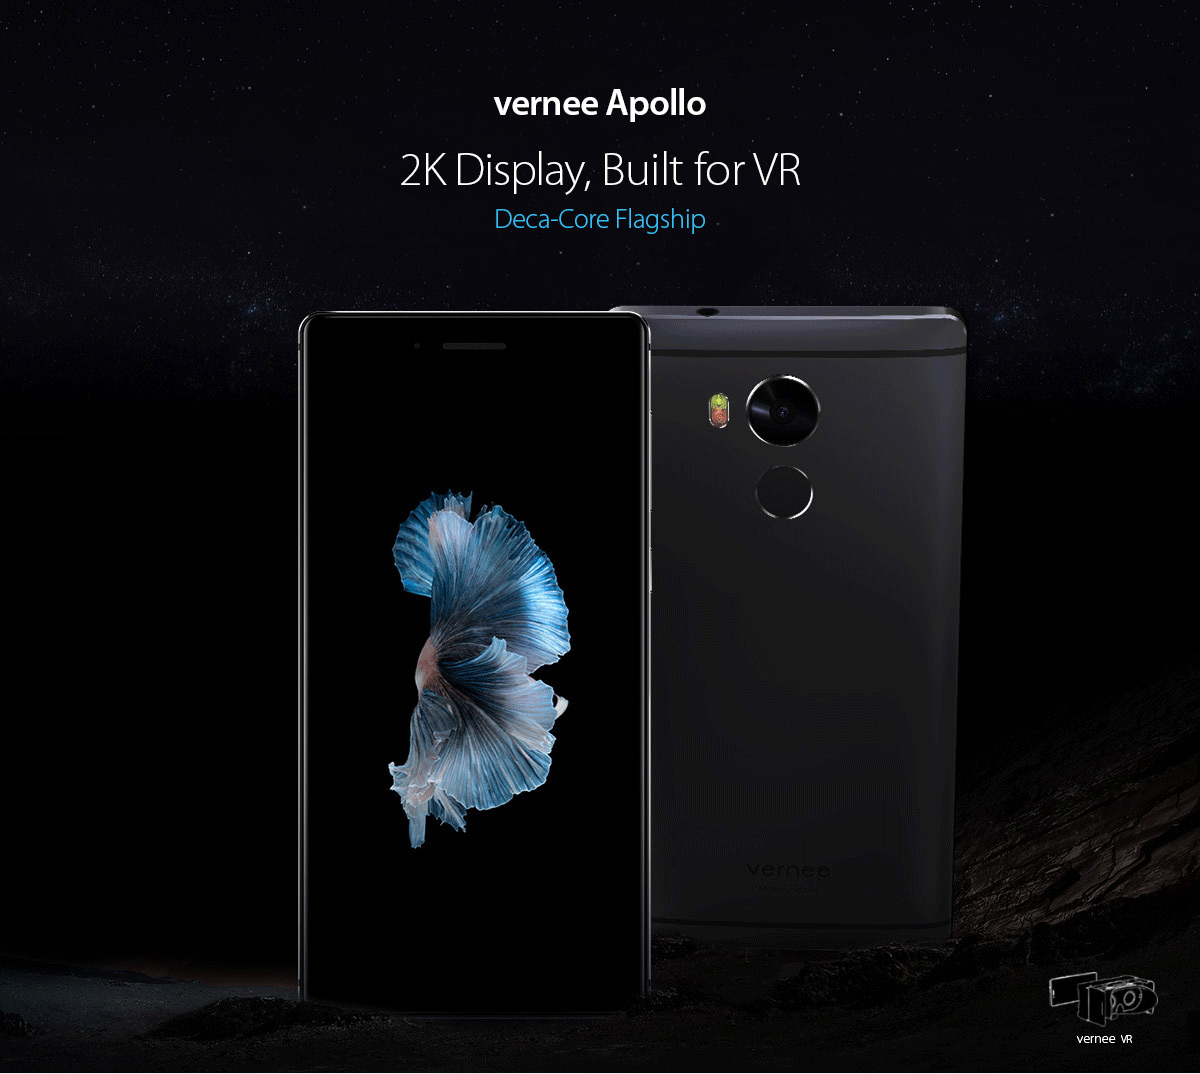 Vernee Apollo Android 6.0 5.5 inch 4G Phablet Helio X25 2.5GHz Deca Core 4GB RAM 64GB ROM 8.0MP + 21.0MP Fingerprint Scanner